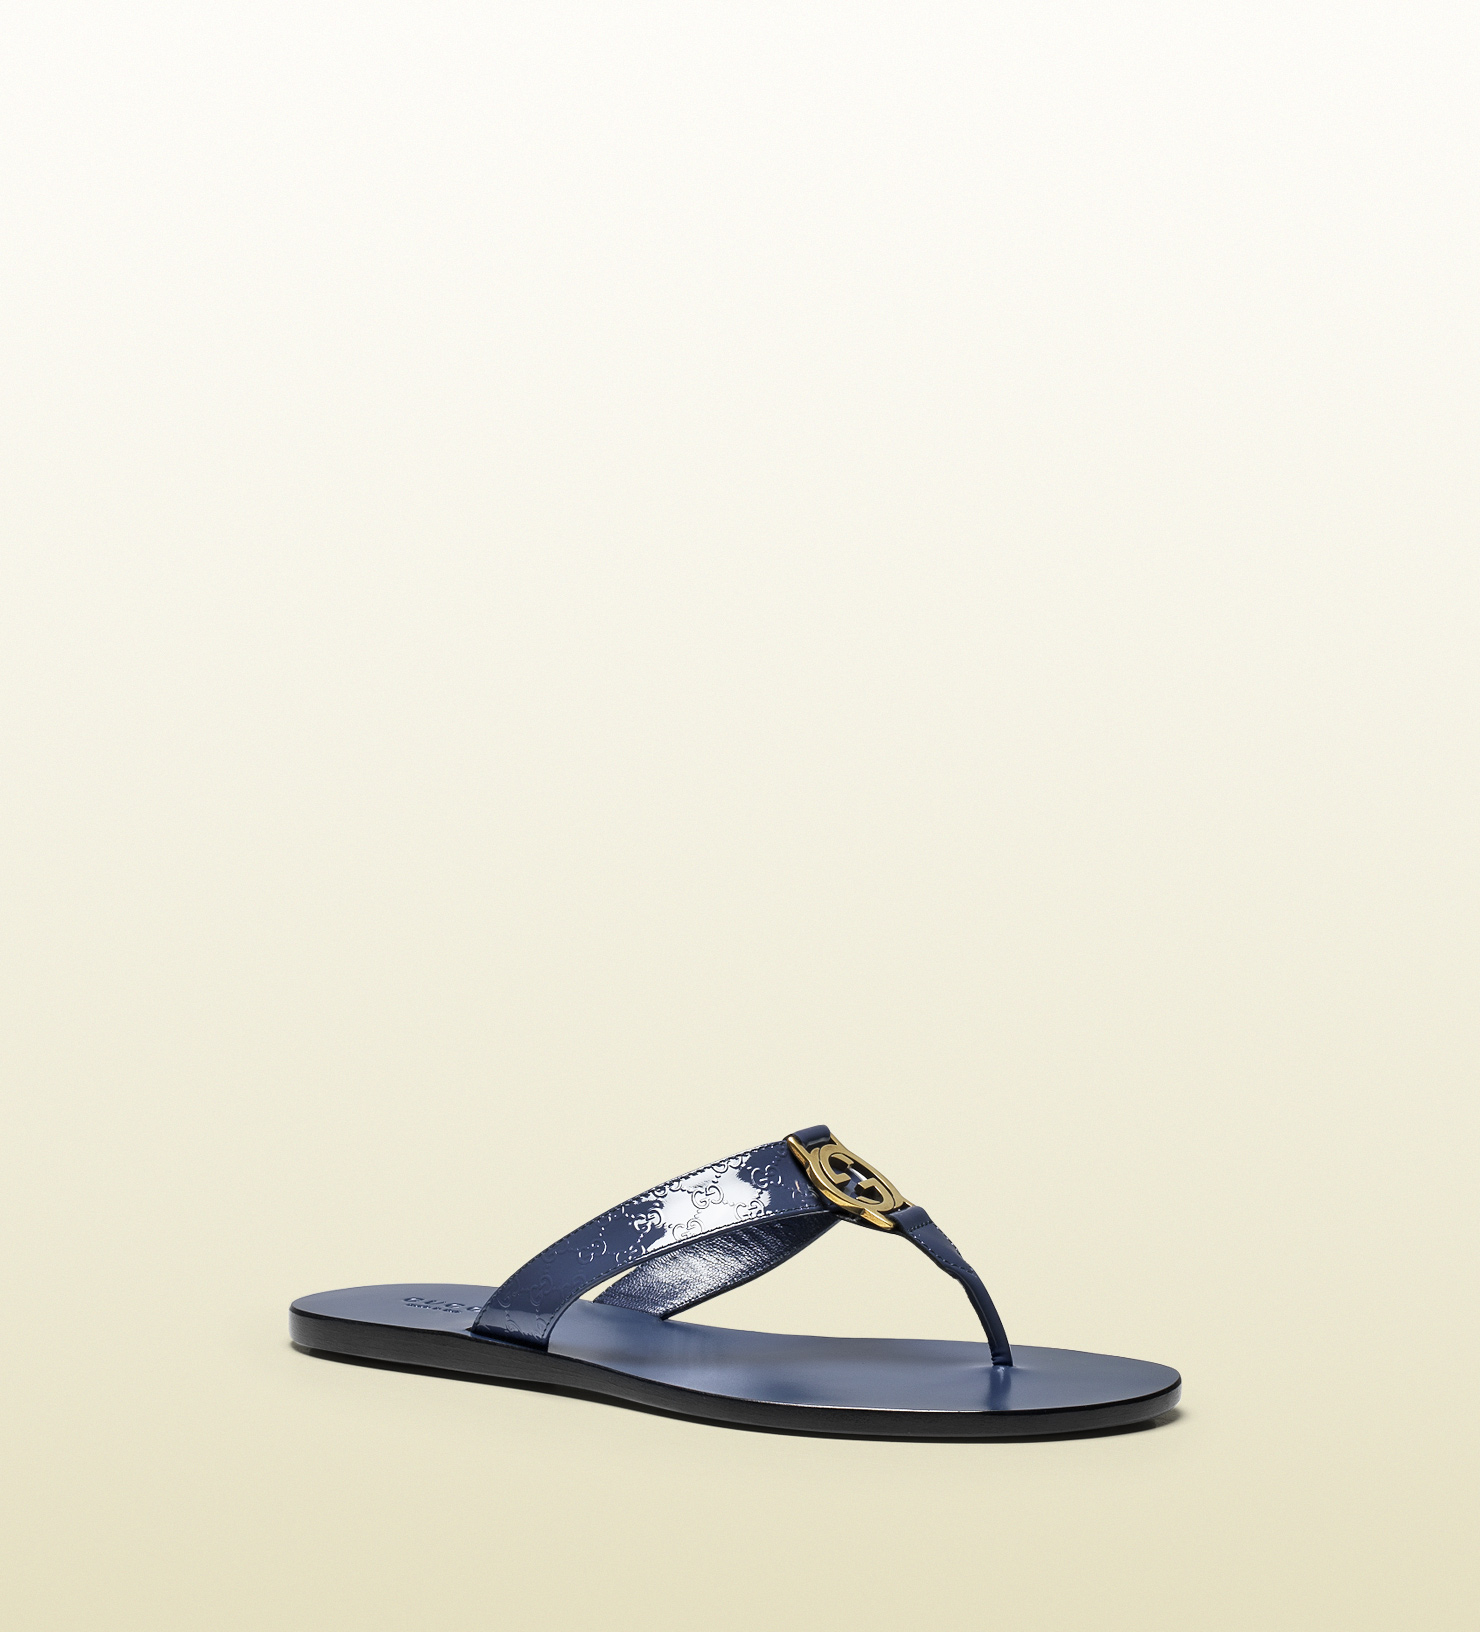 b3b5188e03966e Lyst - Gucci Gg Thong Patent Leather Sandal in Blue